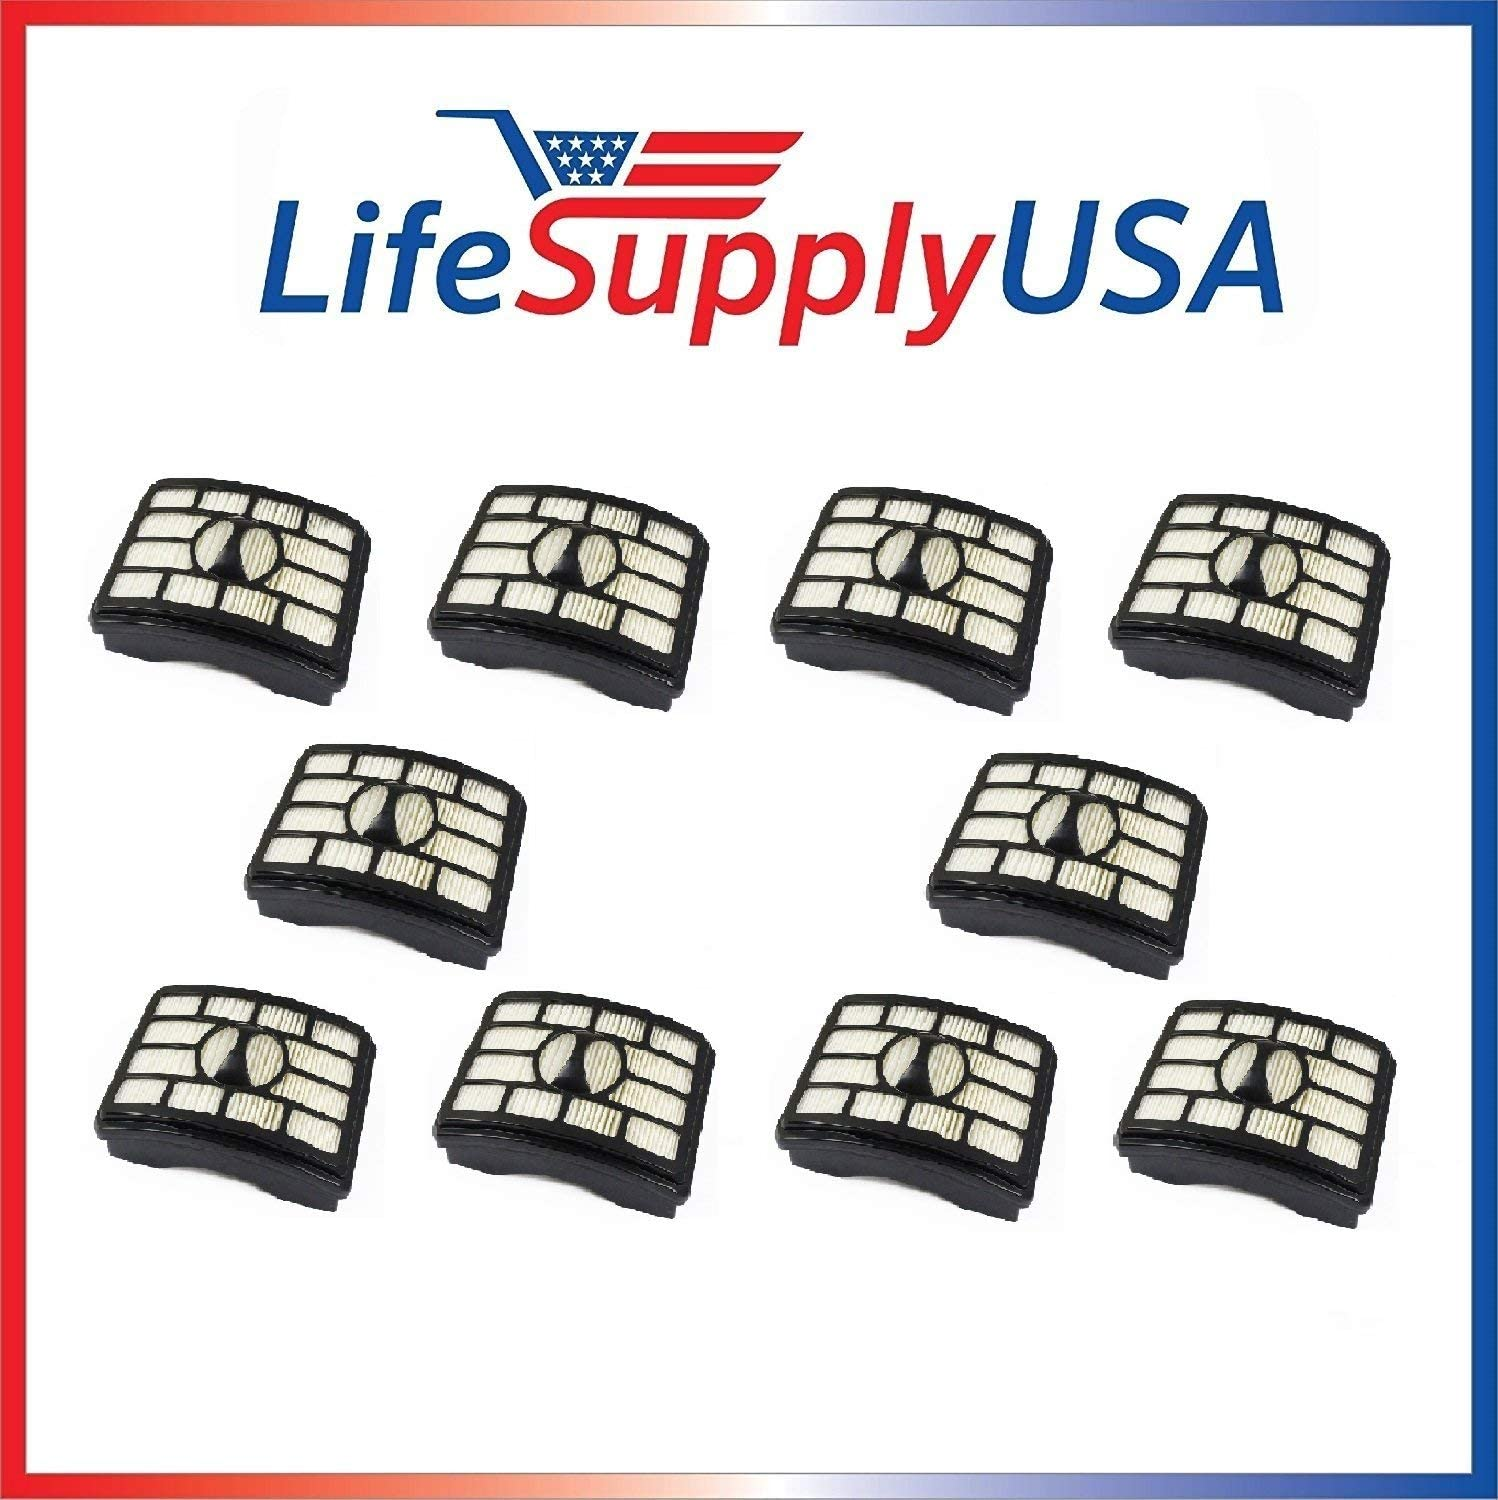 LifeSupplyUSA 10 Pack HEPA Filters Compatible with Shark NV500 Rotator Pro Lift-Away Vacuum Cleaners, Part XFH500